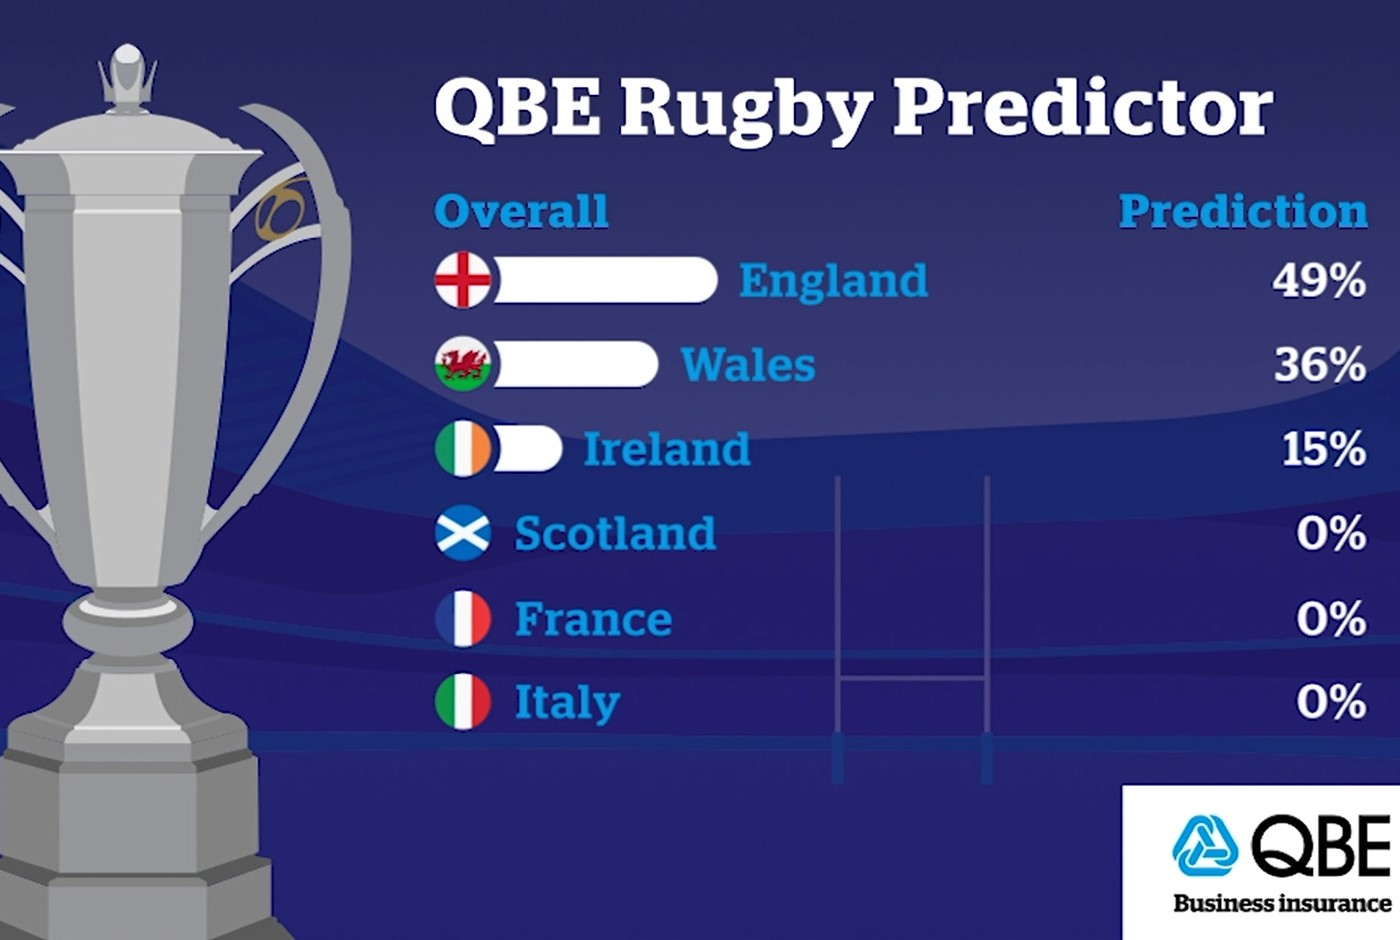 QBE supercomputer predicts Six Nations outcome to go down to the final day